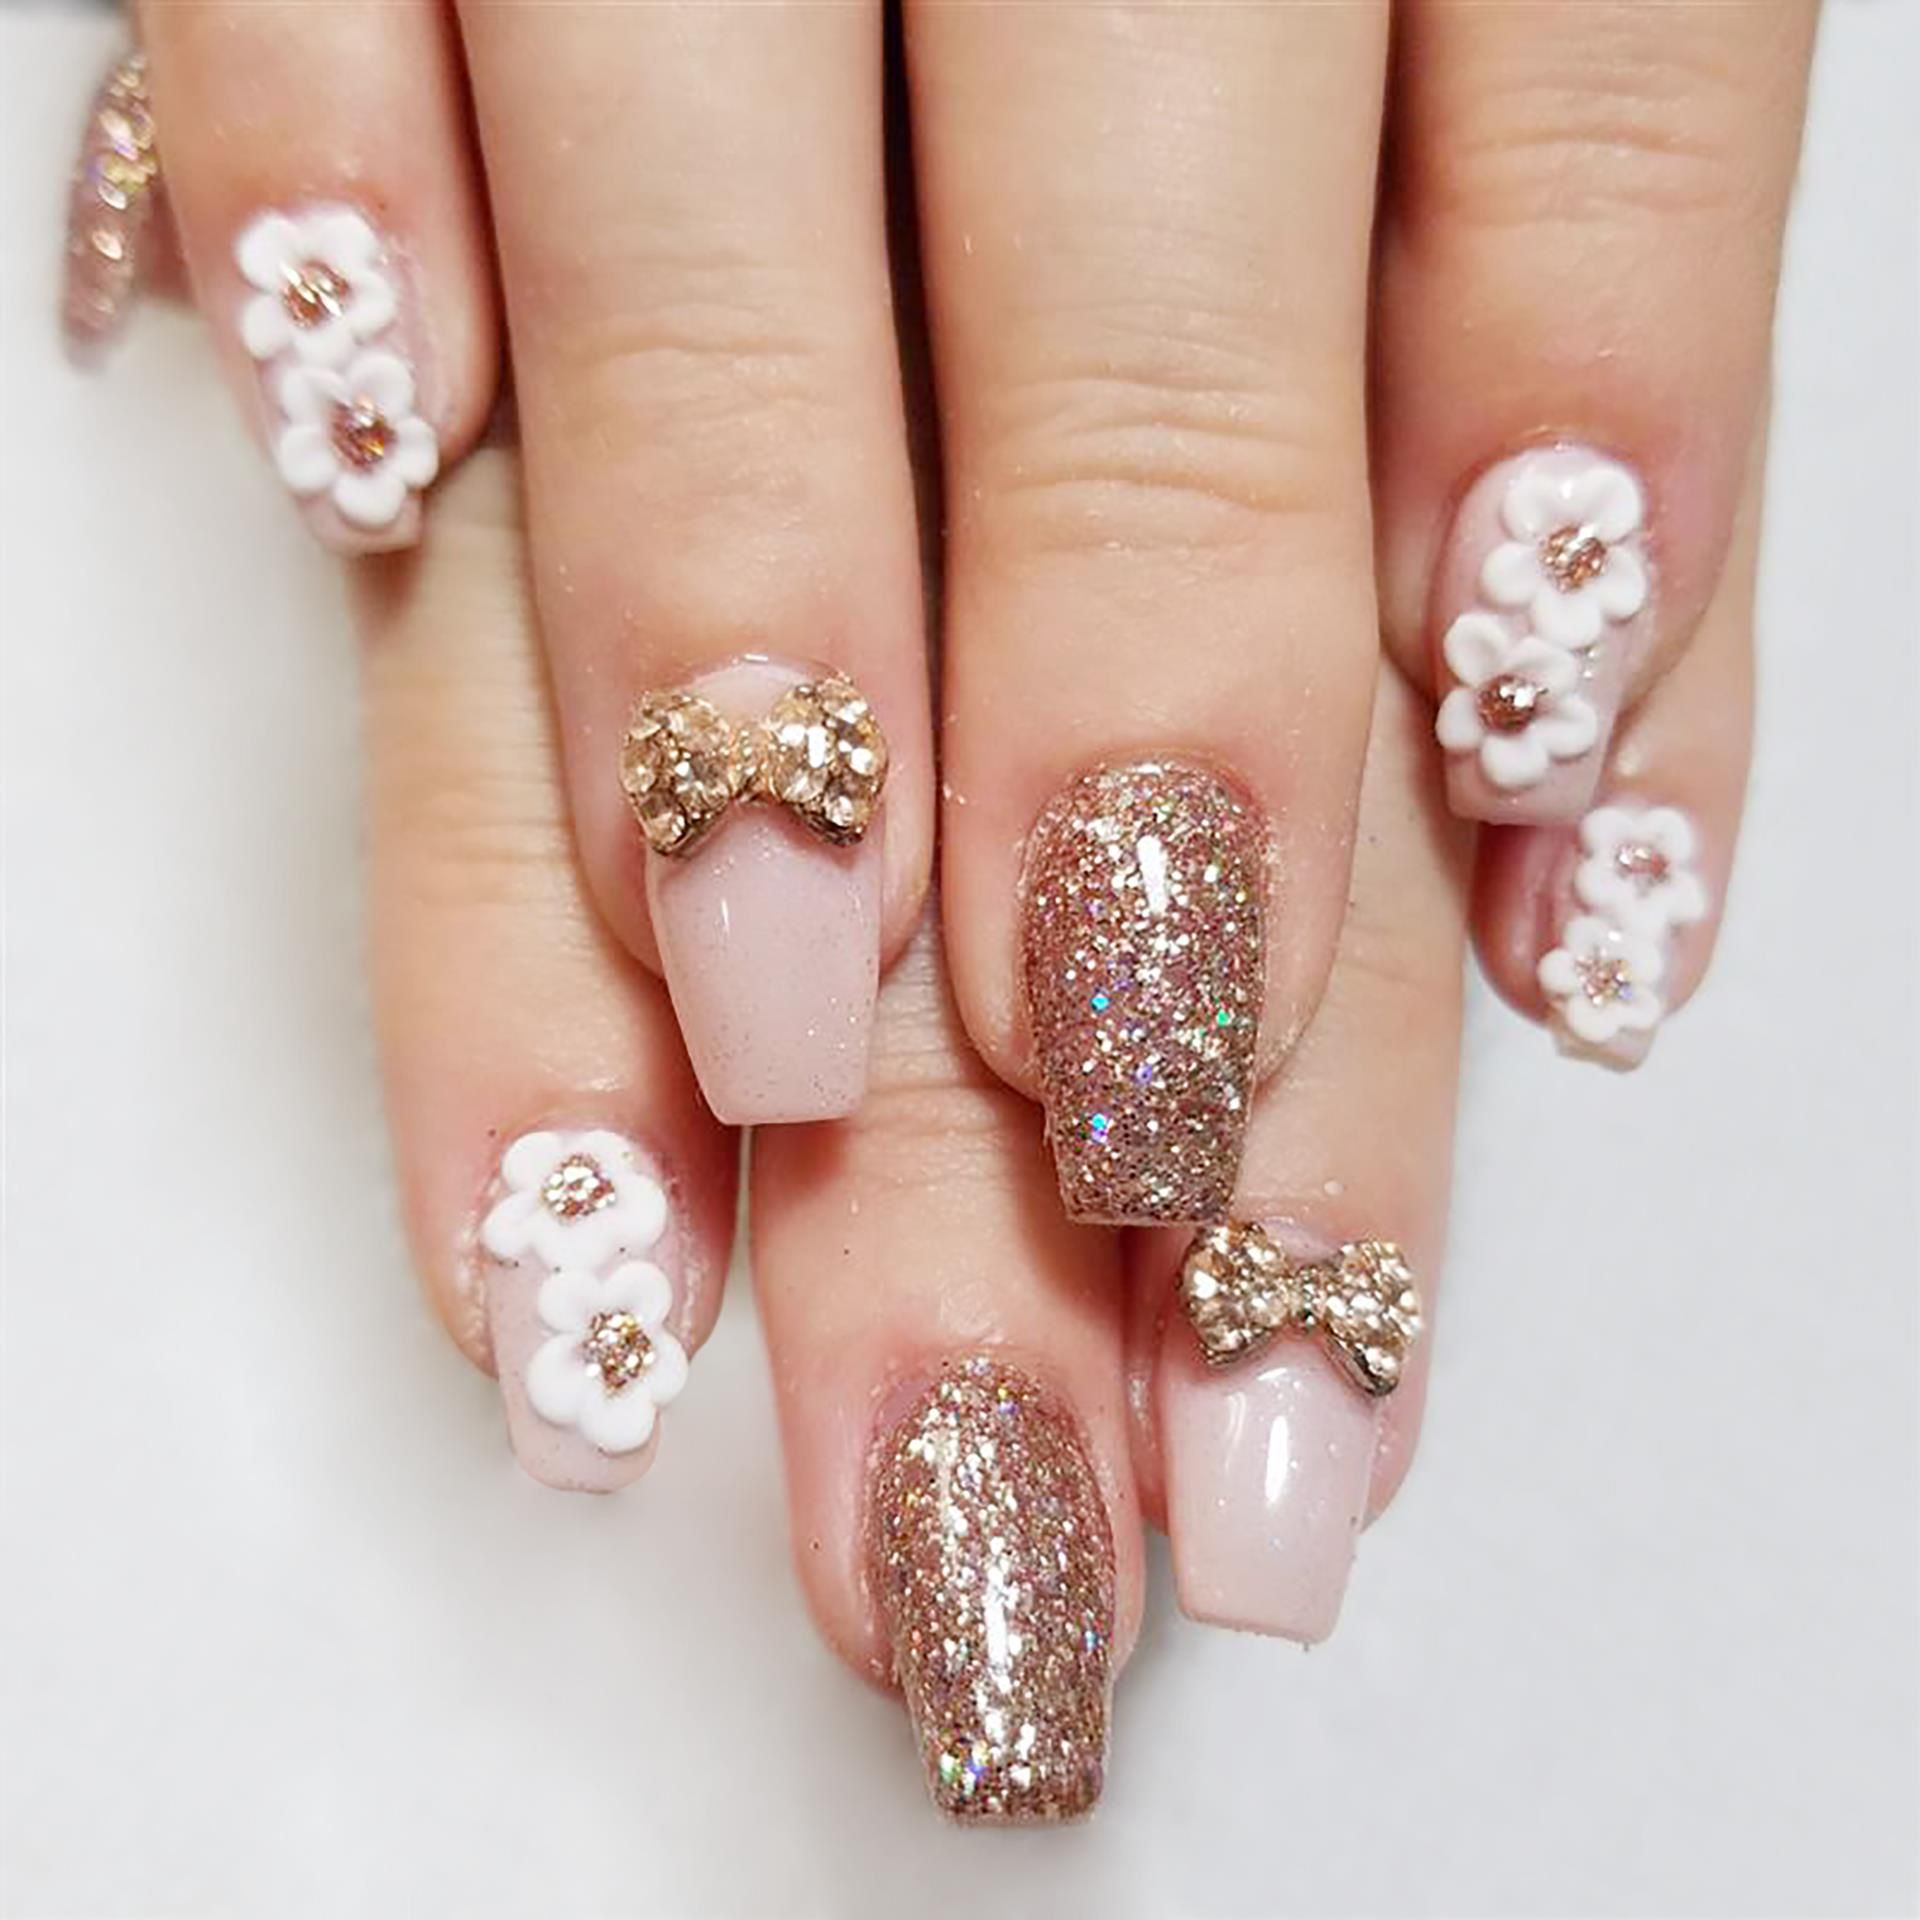 Acrylic Fill Hands 35 3d Bows And Flowers Are Additional Cost Elegant Nail Art Nail Art Nails